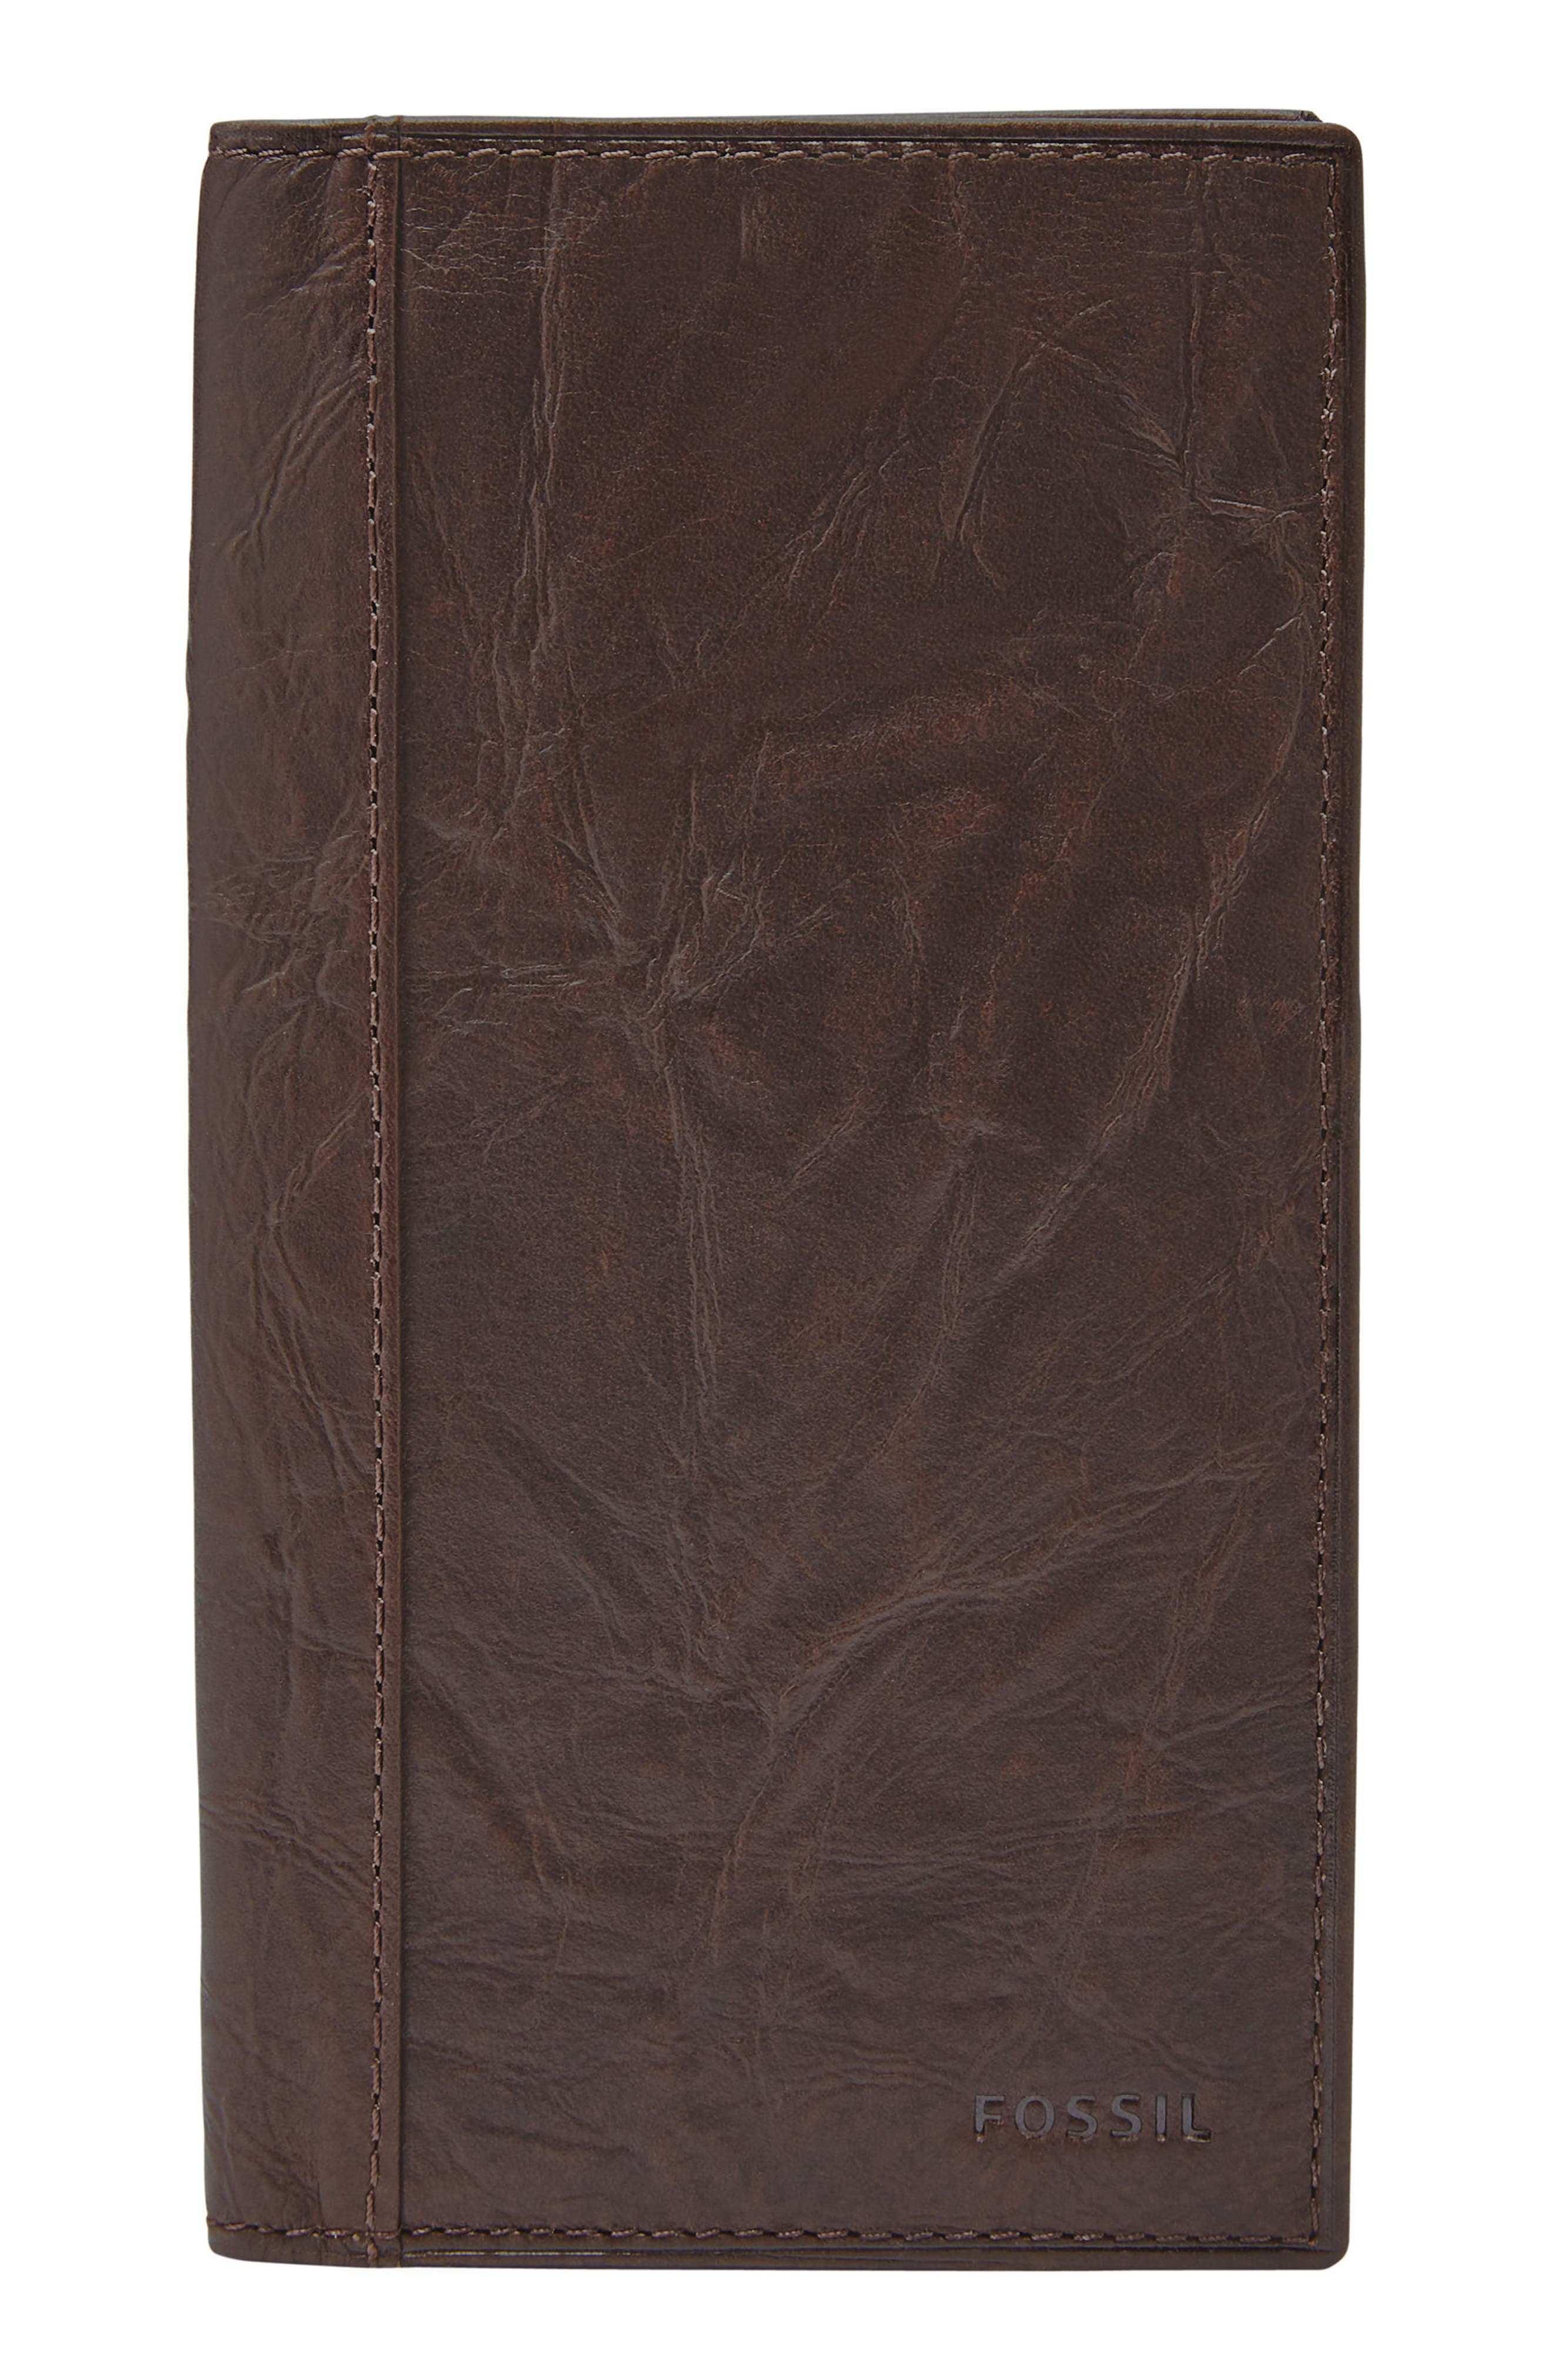 FOSSIL Neel Leather Executive Wallet, Main, color, BROWN